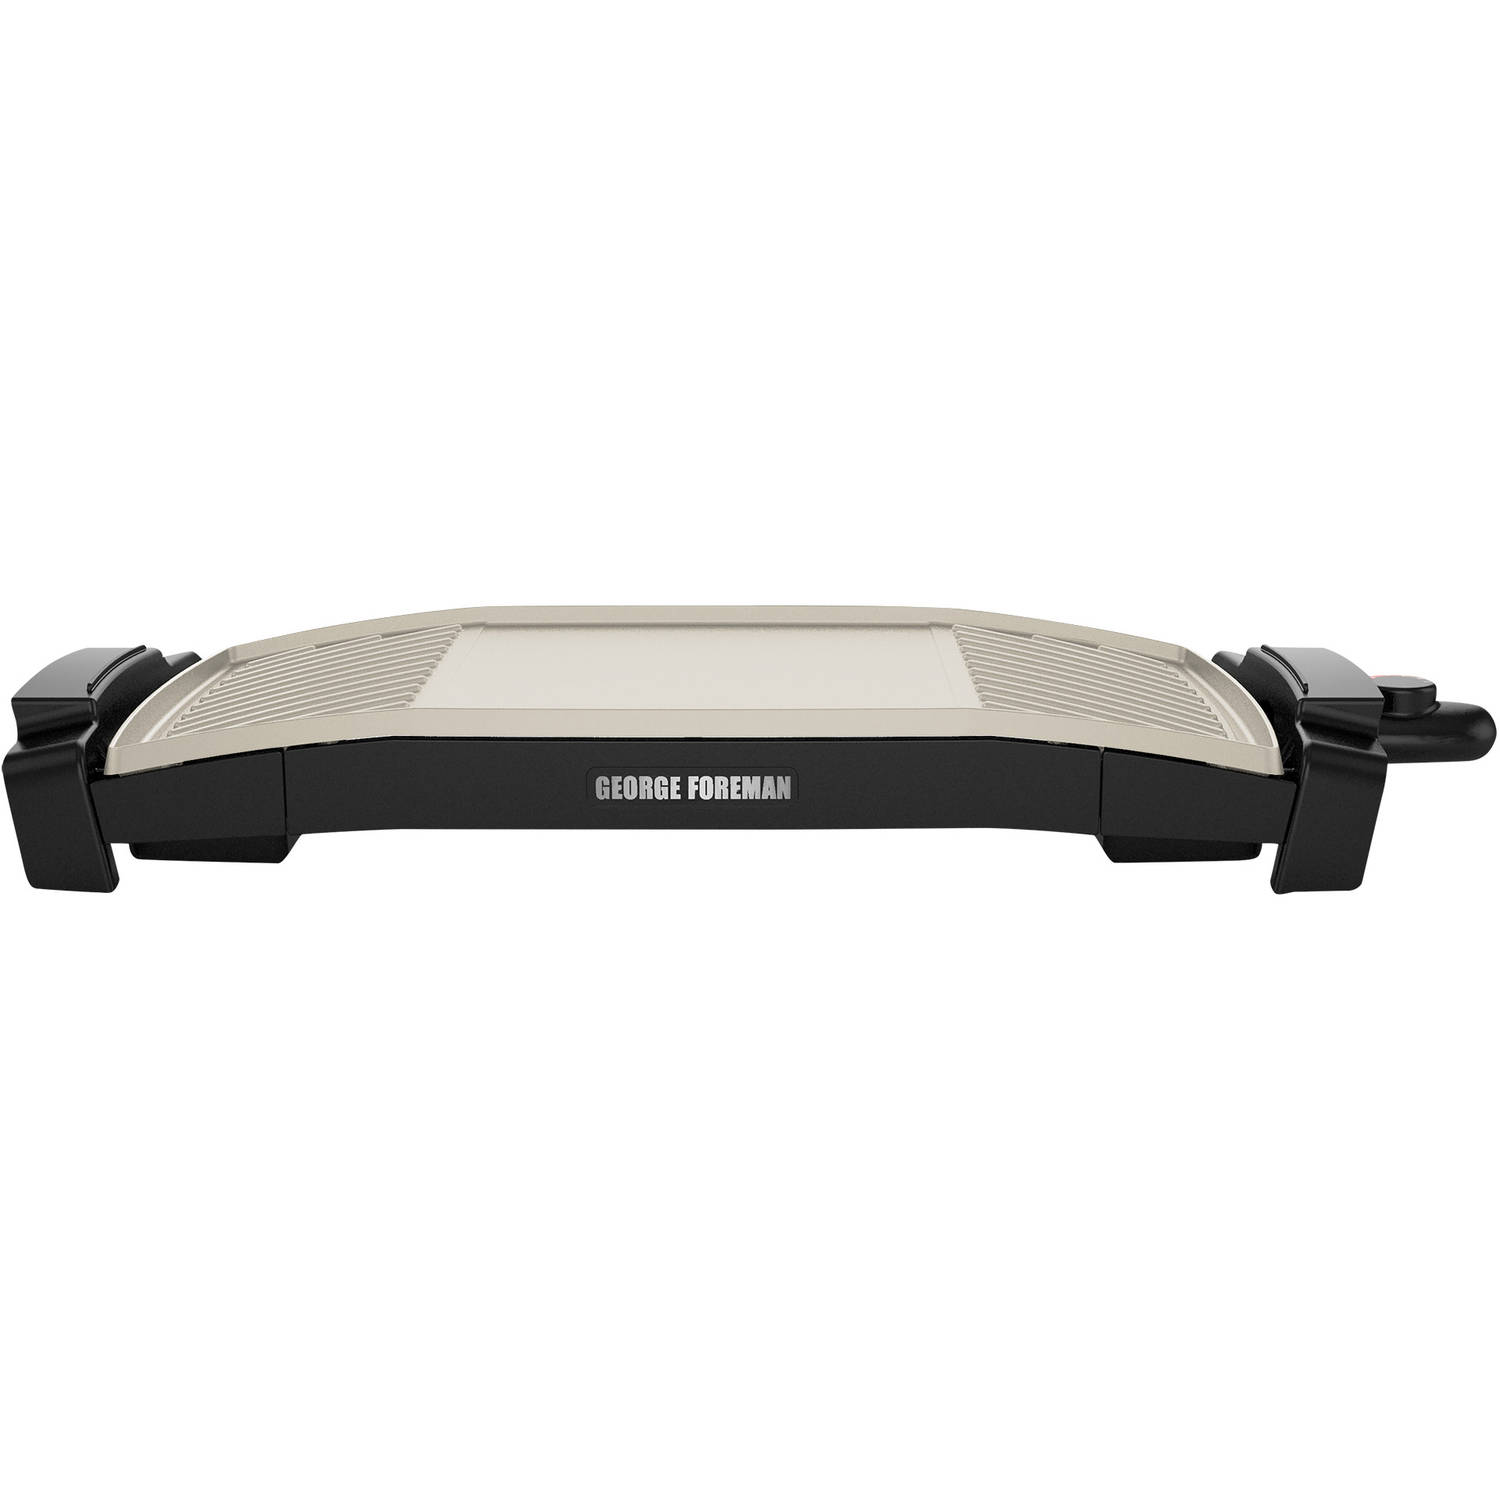 George Foreman Dual Surface Griddle and Grill, GFG240X by Spectrum Brands